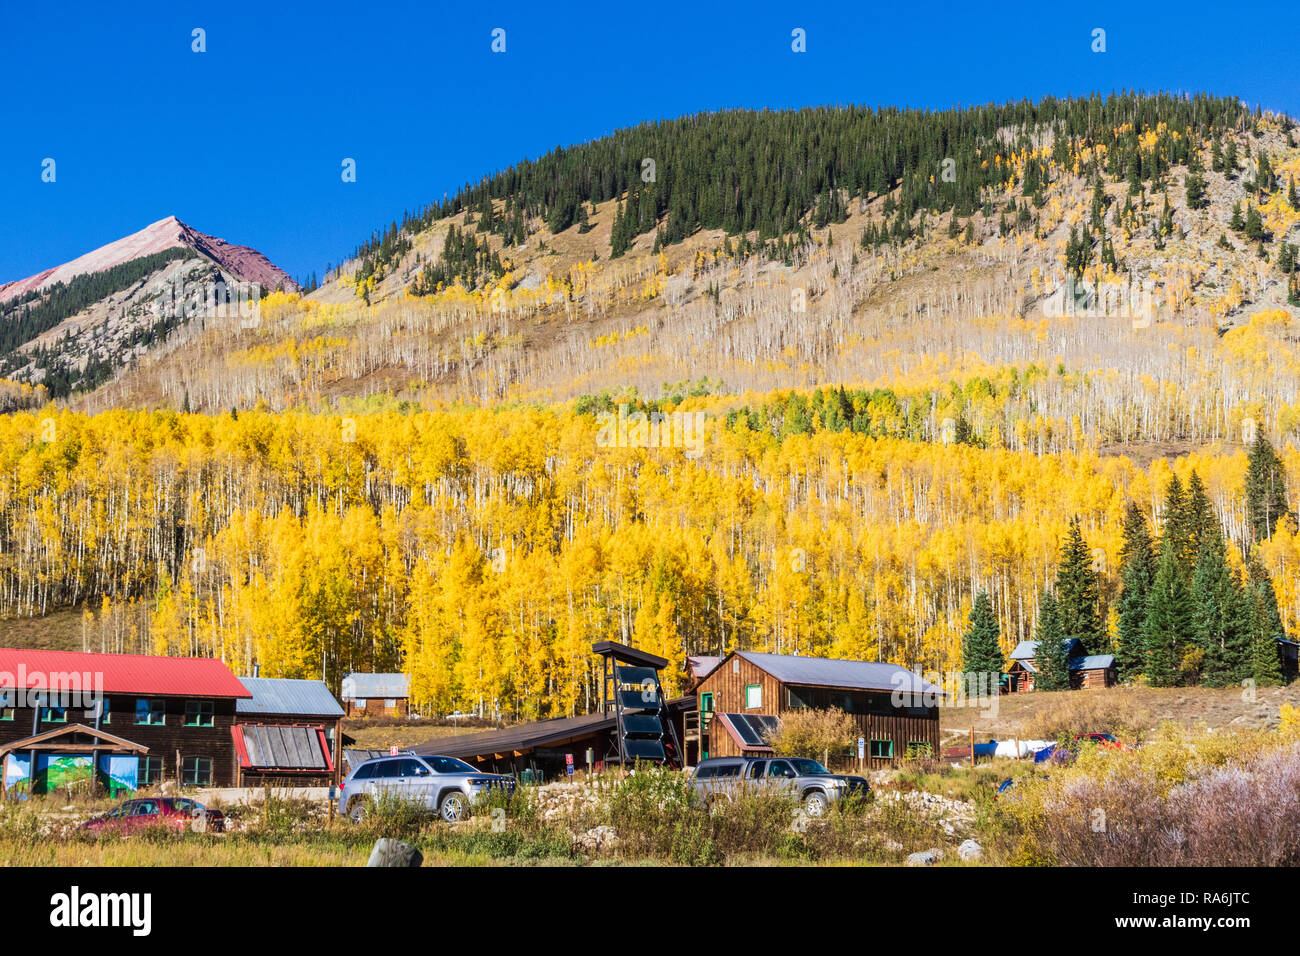 Rocky Mountains Biological Laboratory in Colorado on Gothic Road (site of old Gothic Ghost town also) - Stock Image